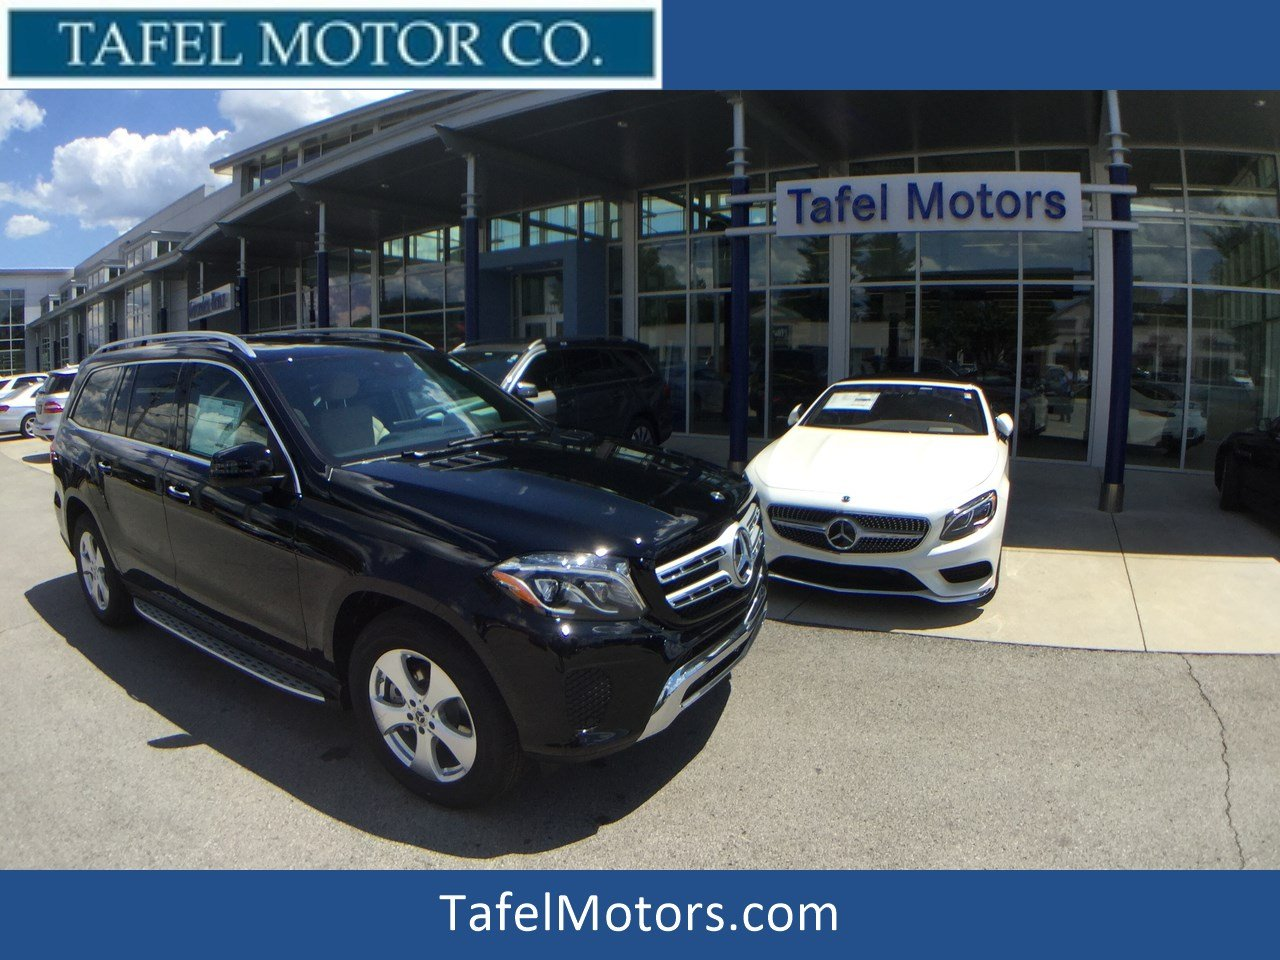 New 2017 mercedes benz gls gls 450 4matic suv sport for 2017 mercedes benz gls 450